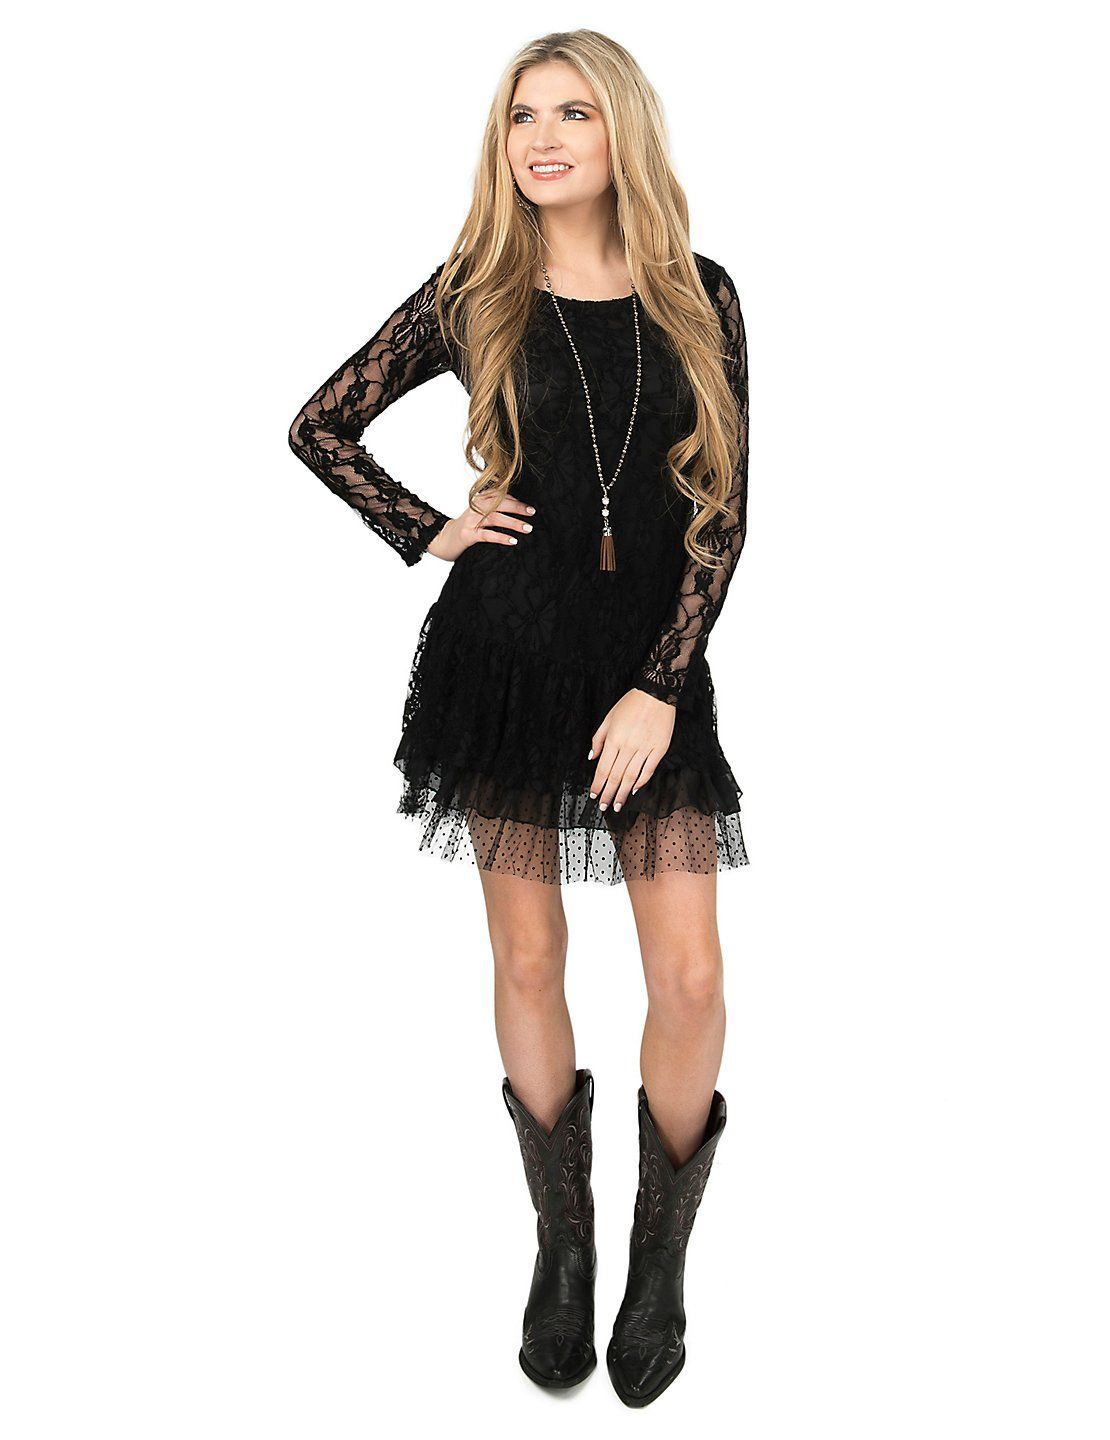 Cowgirl Hardware Women S Black Lace With Ruffled Bottom Long Sleeve Dress Cavender S Cowgirl Dresses Country Western Dresses Western Dresses [ 1440 x 1110 Pixel ]